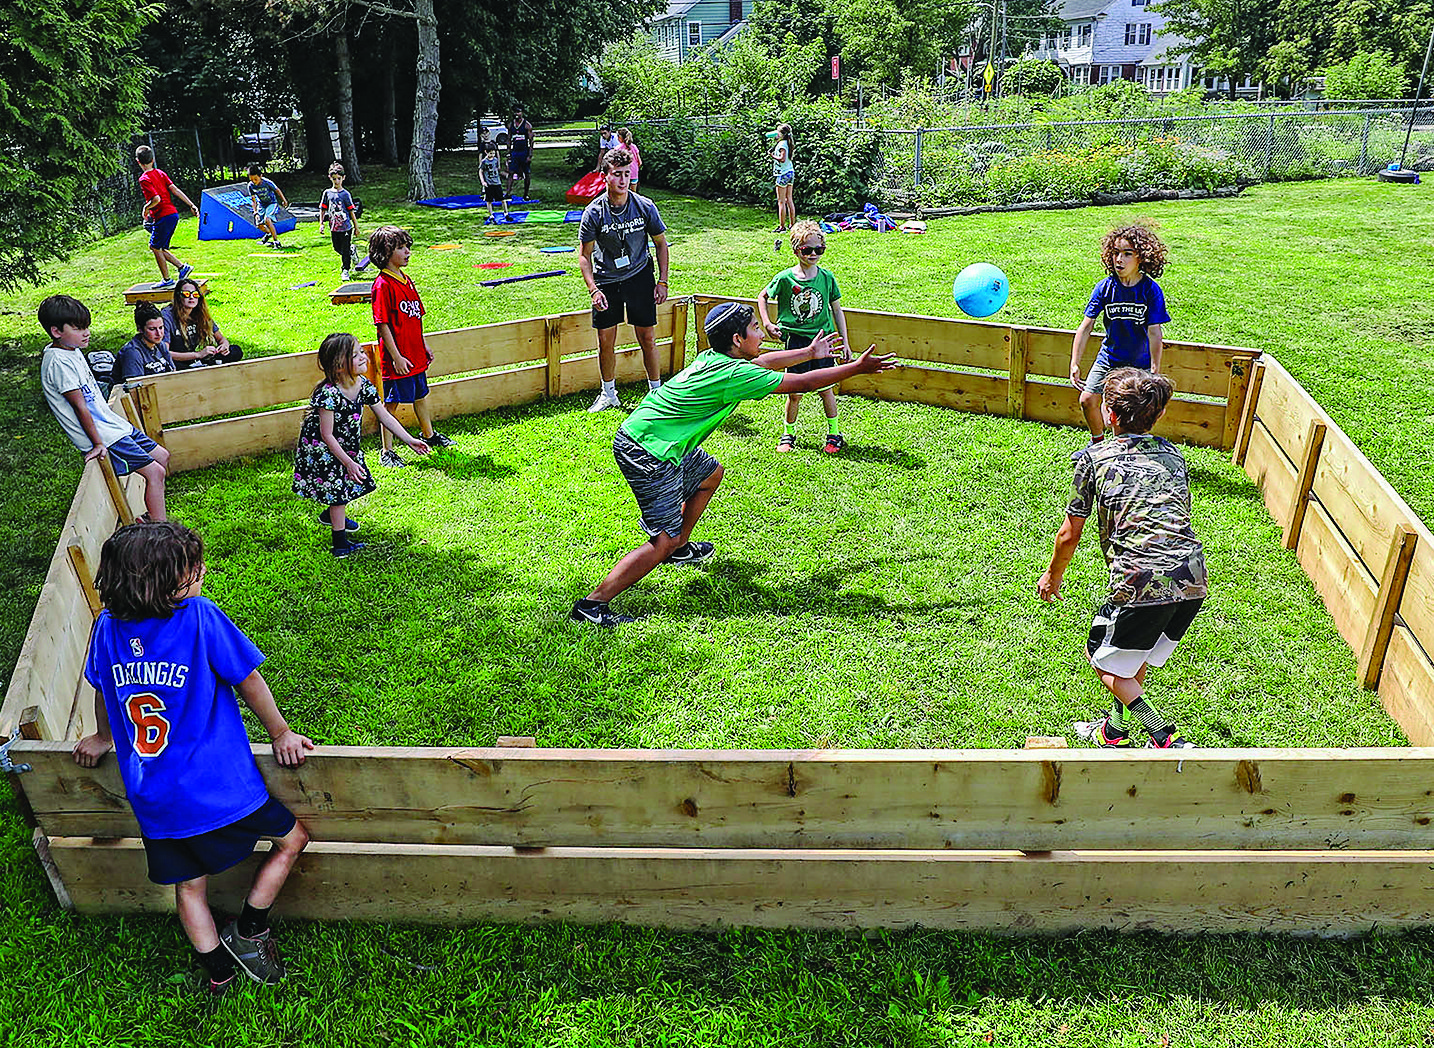 There's nothing like a game in J-Camp's gaga pit. Gaga is an Israeli game that all the campers enjoy.